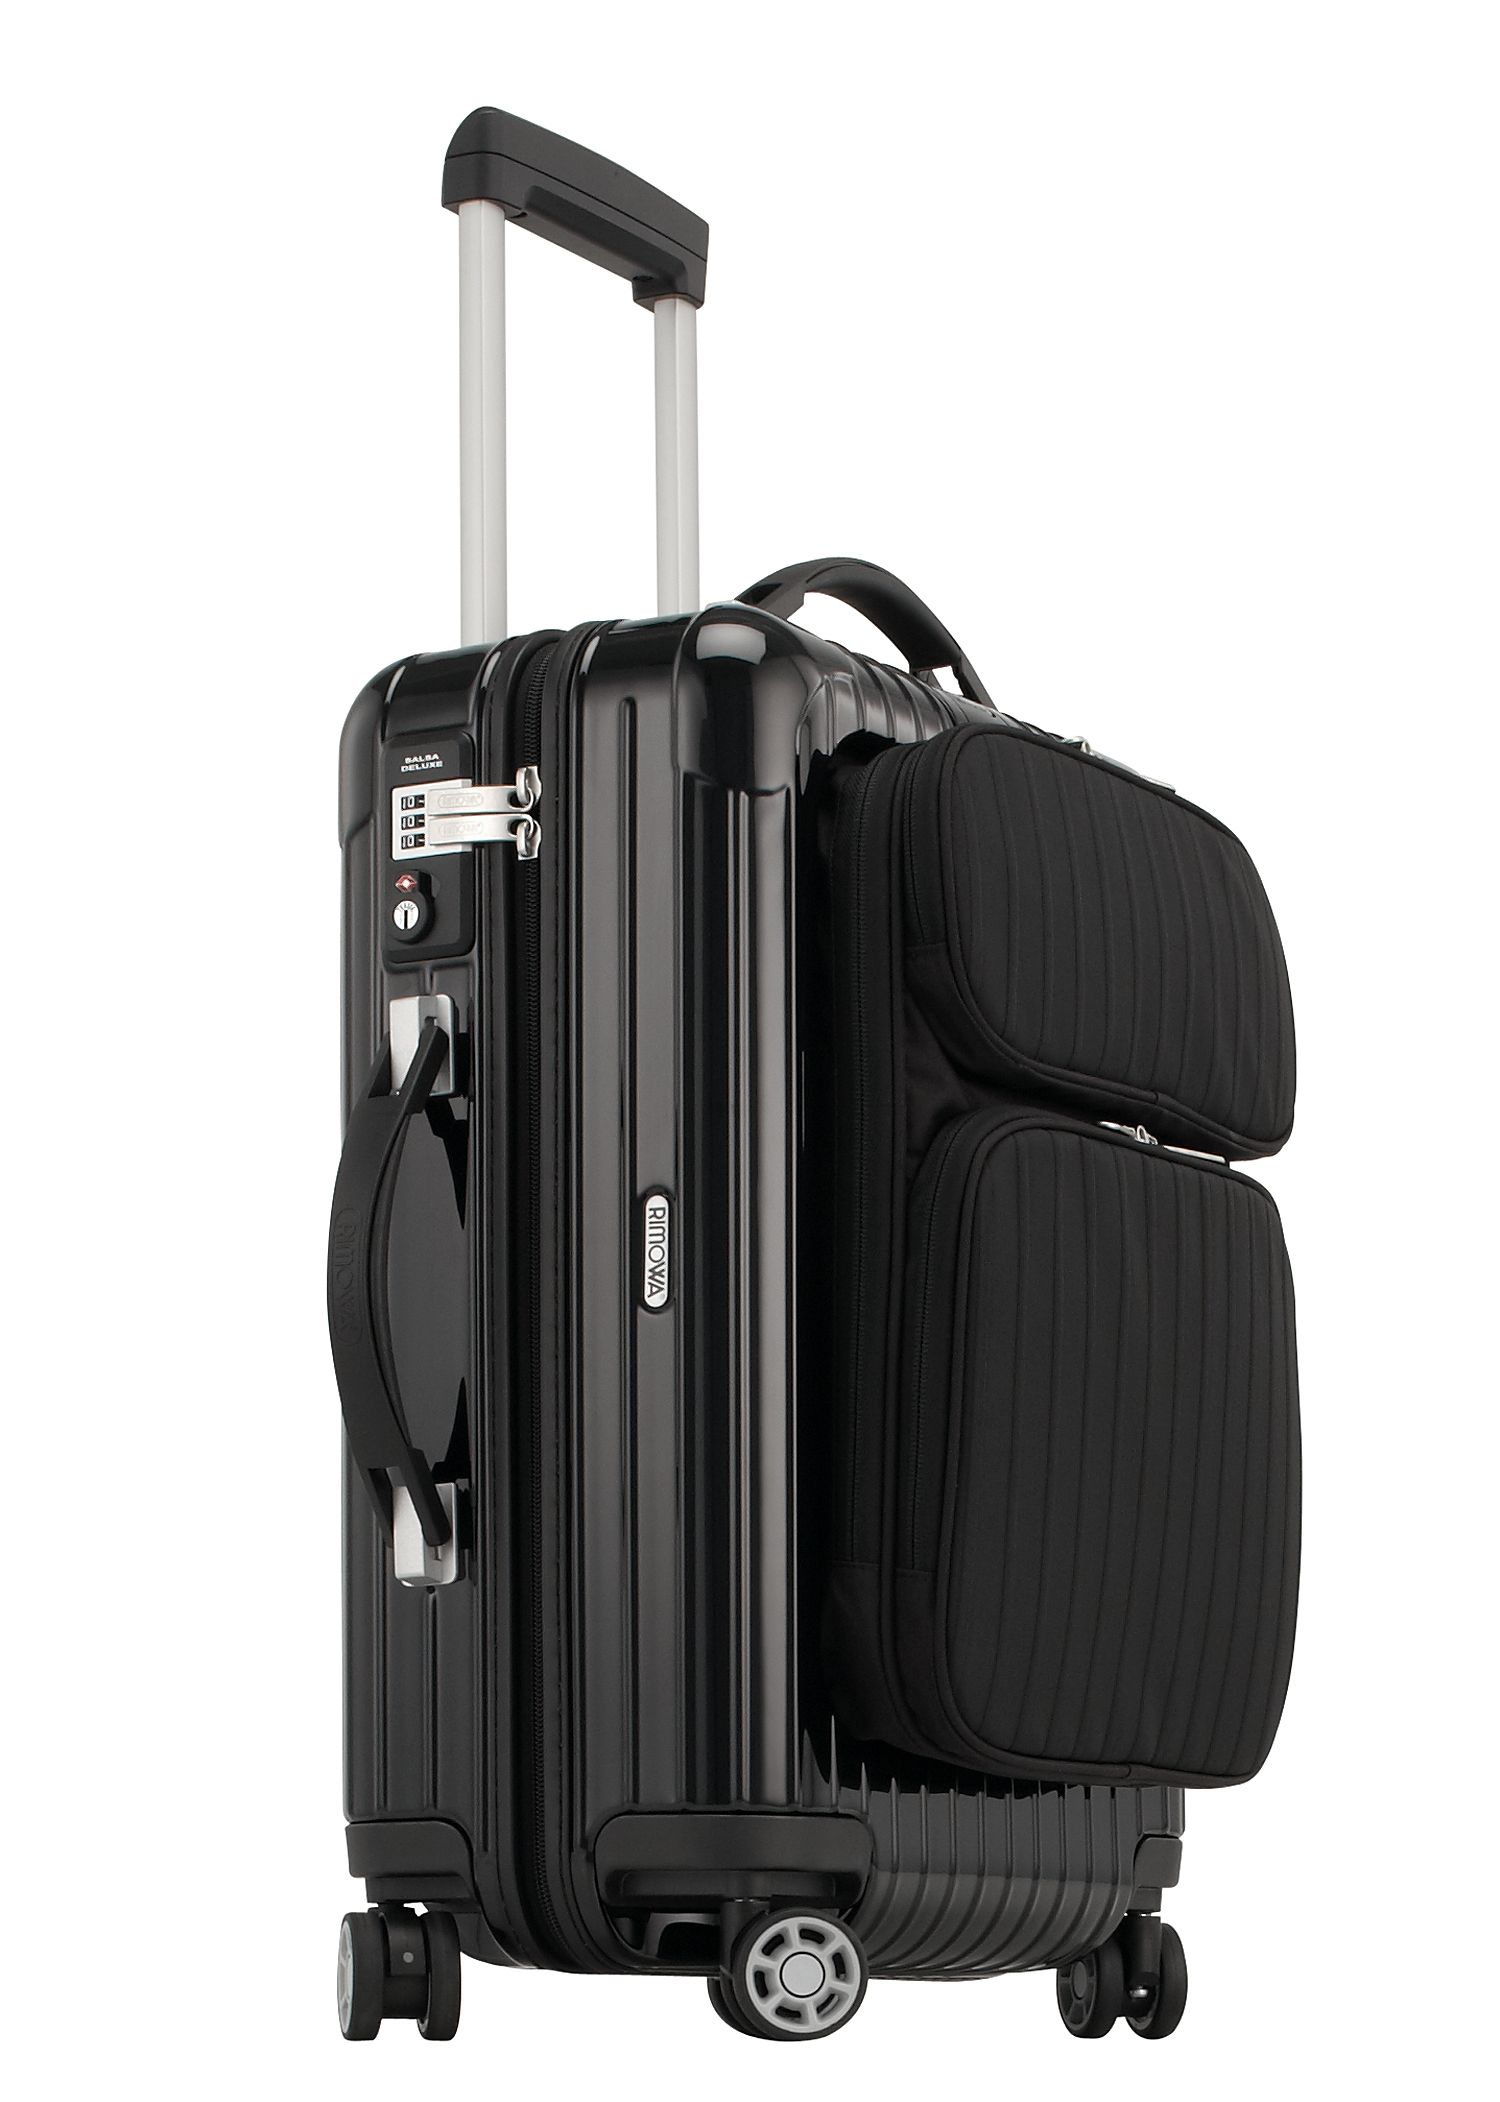 rimowa salsa deluxe hybrid cabin multiwheel iata 52 schwarz koffer trolleys. Black Bedroom Furniture Sets. Home Design Ideas